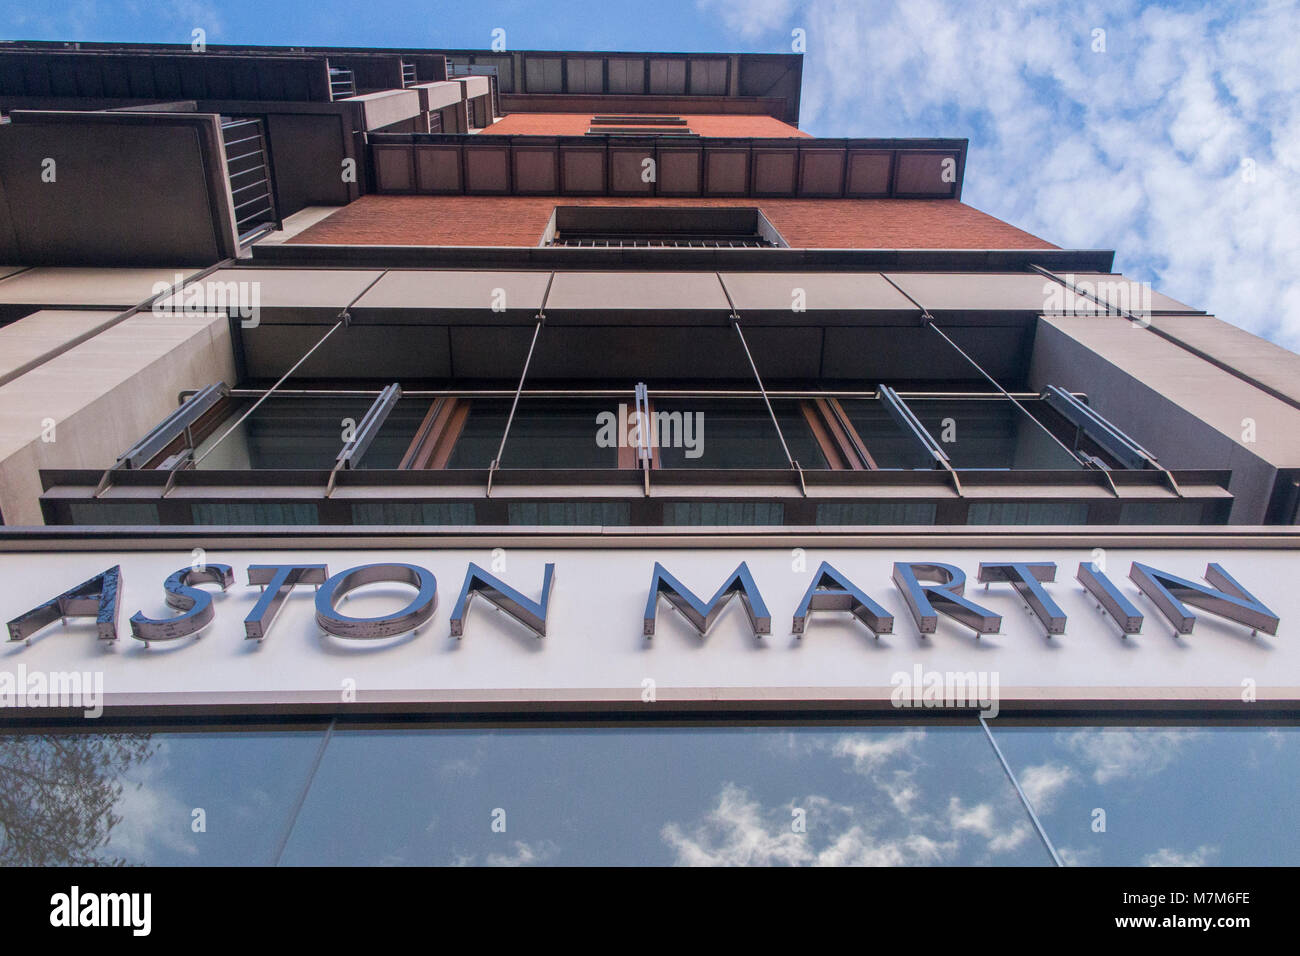 The famous Aston Martin logo on a car showroom in London - Stock Image